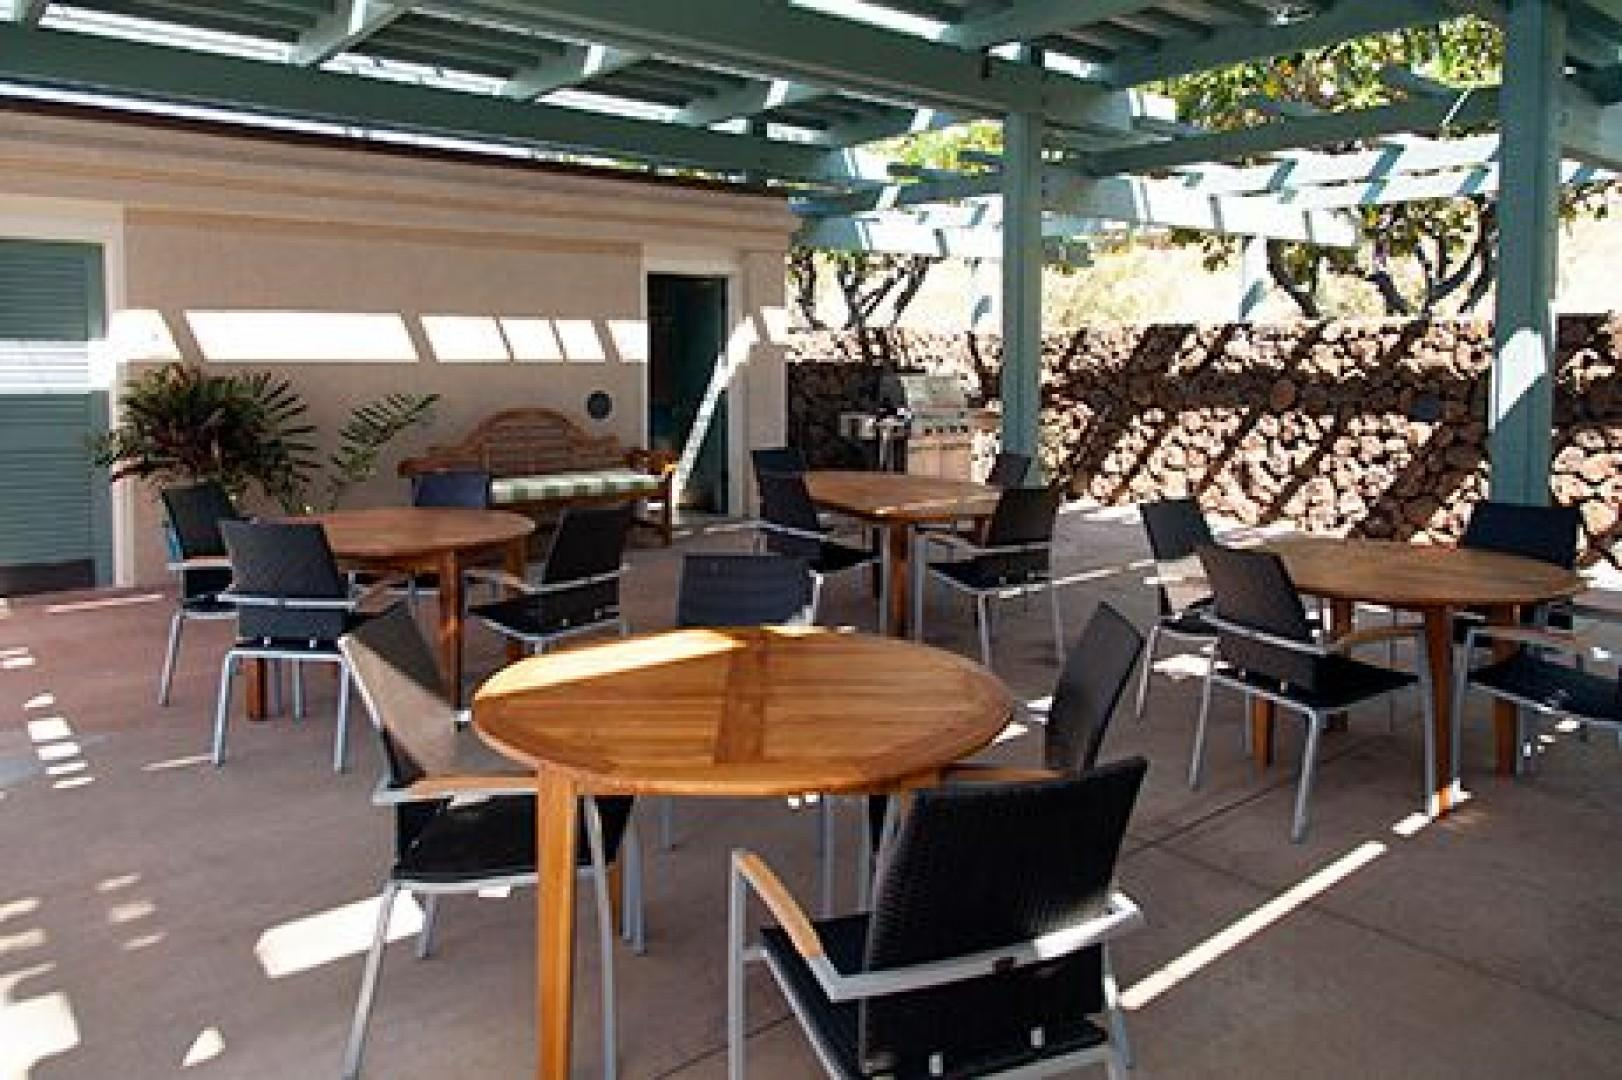 There are additional BBQ's here for your use as well as seating areas and restrooms.